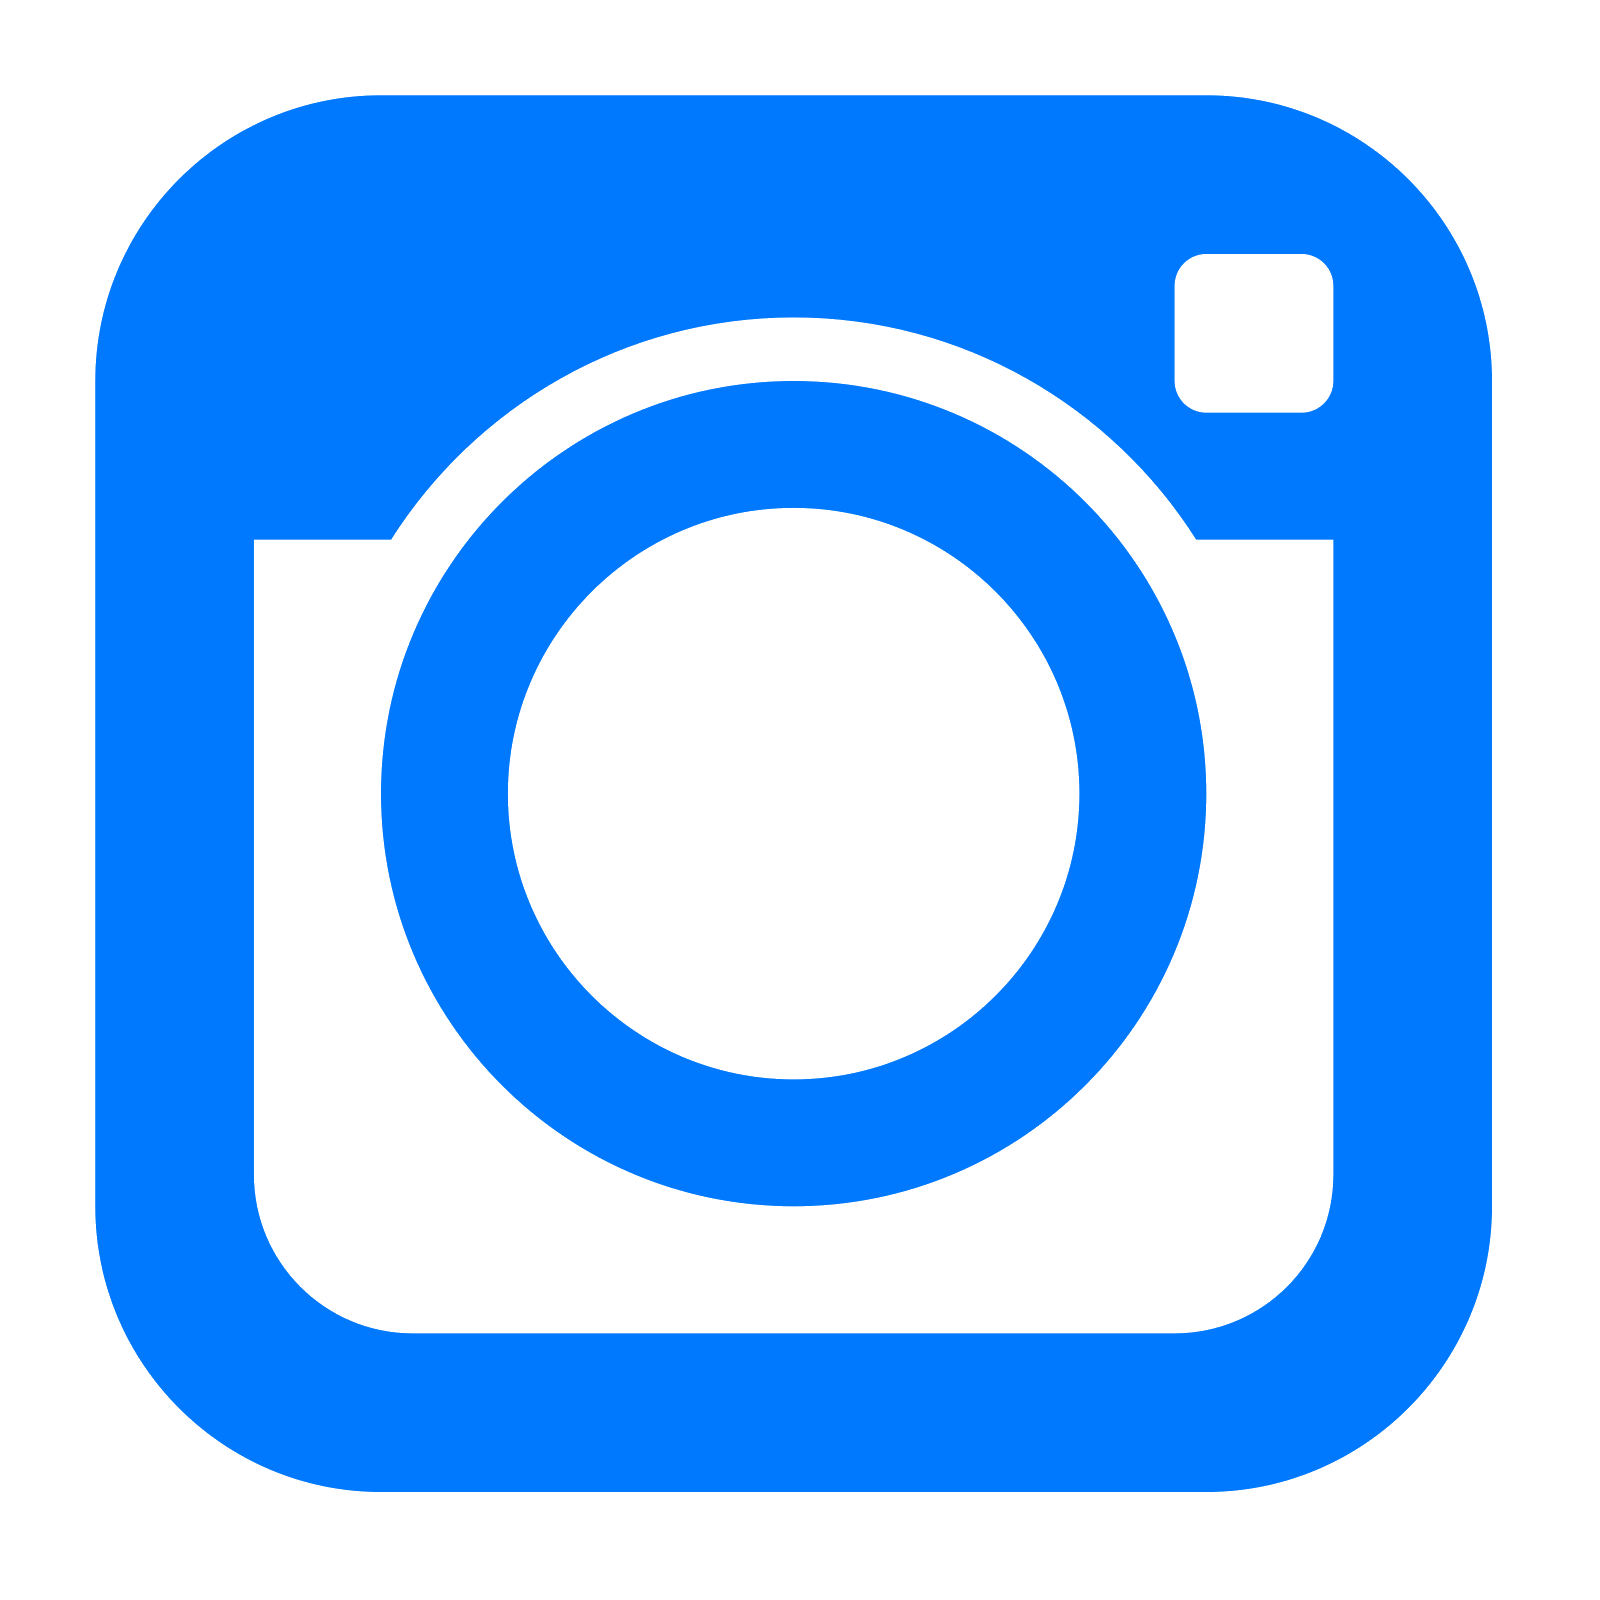 Download Computer Instagram Icons PNG File HD HQ PNG Image.